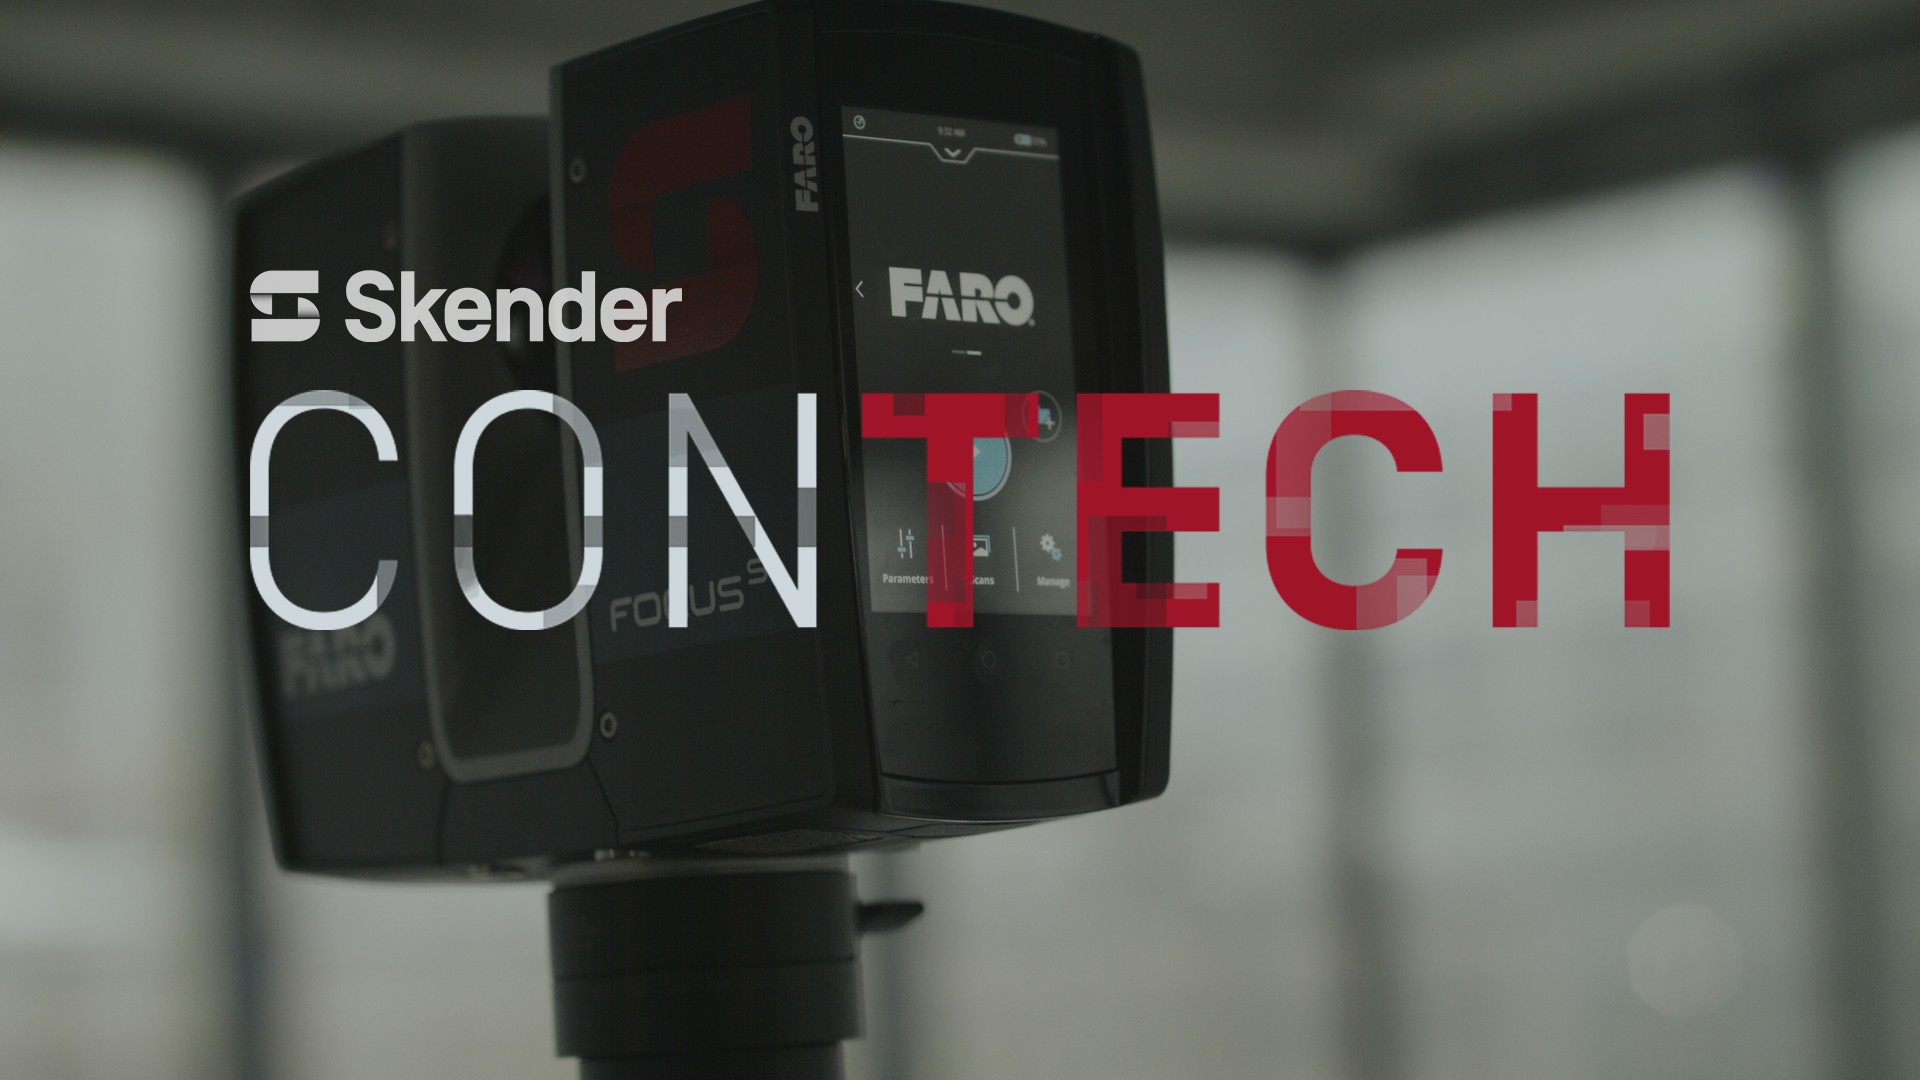 Experience Skender ConTech